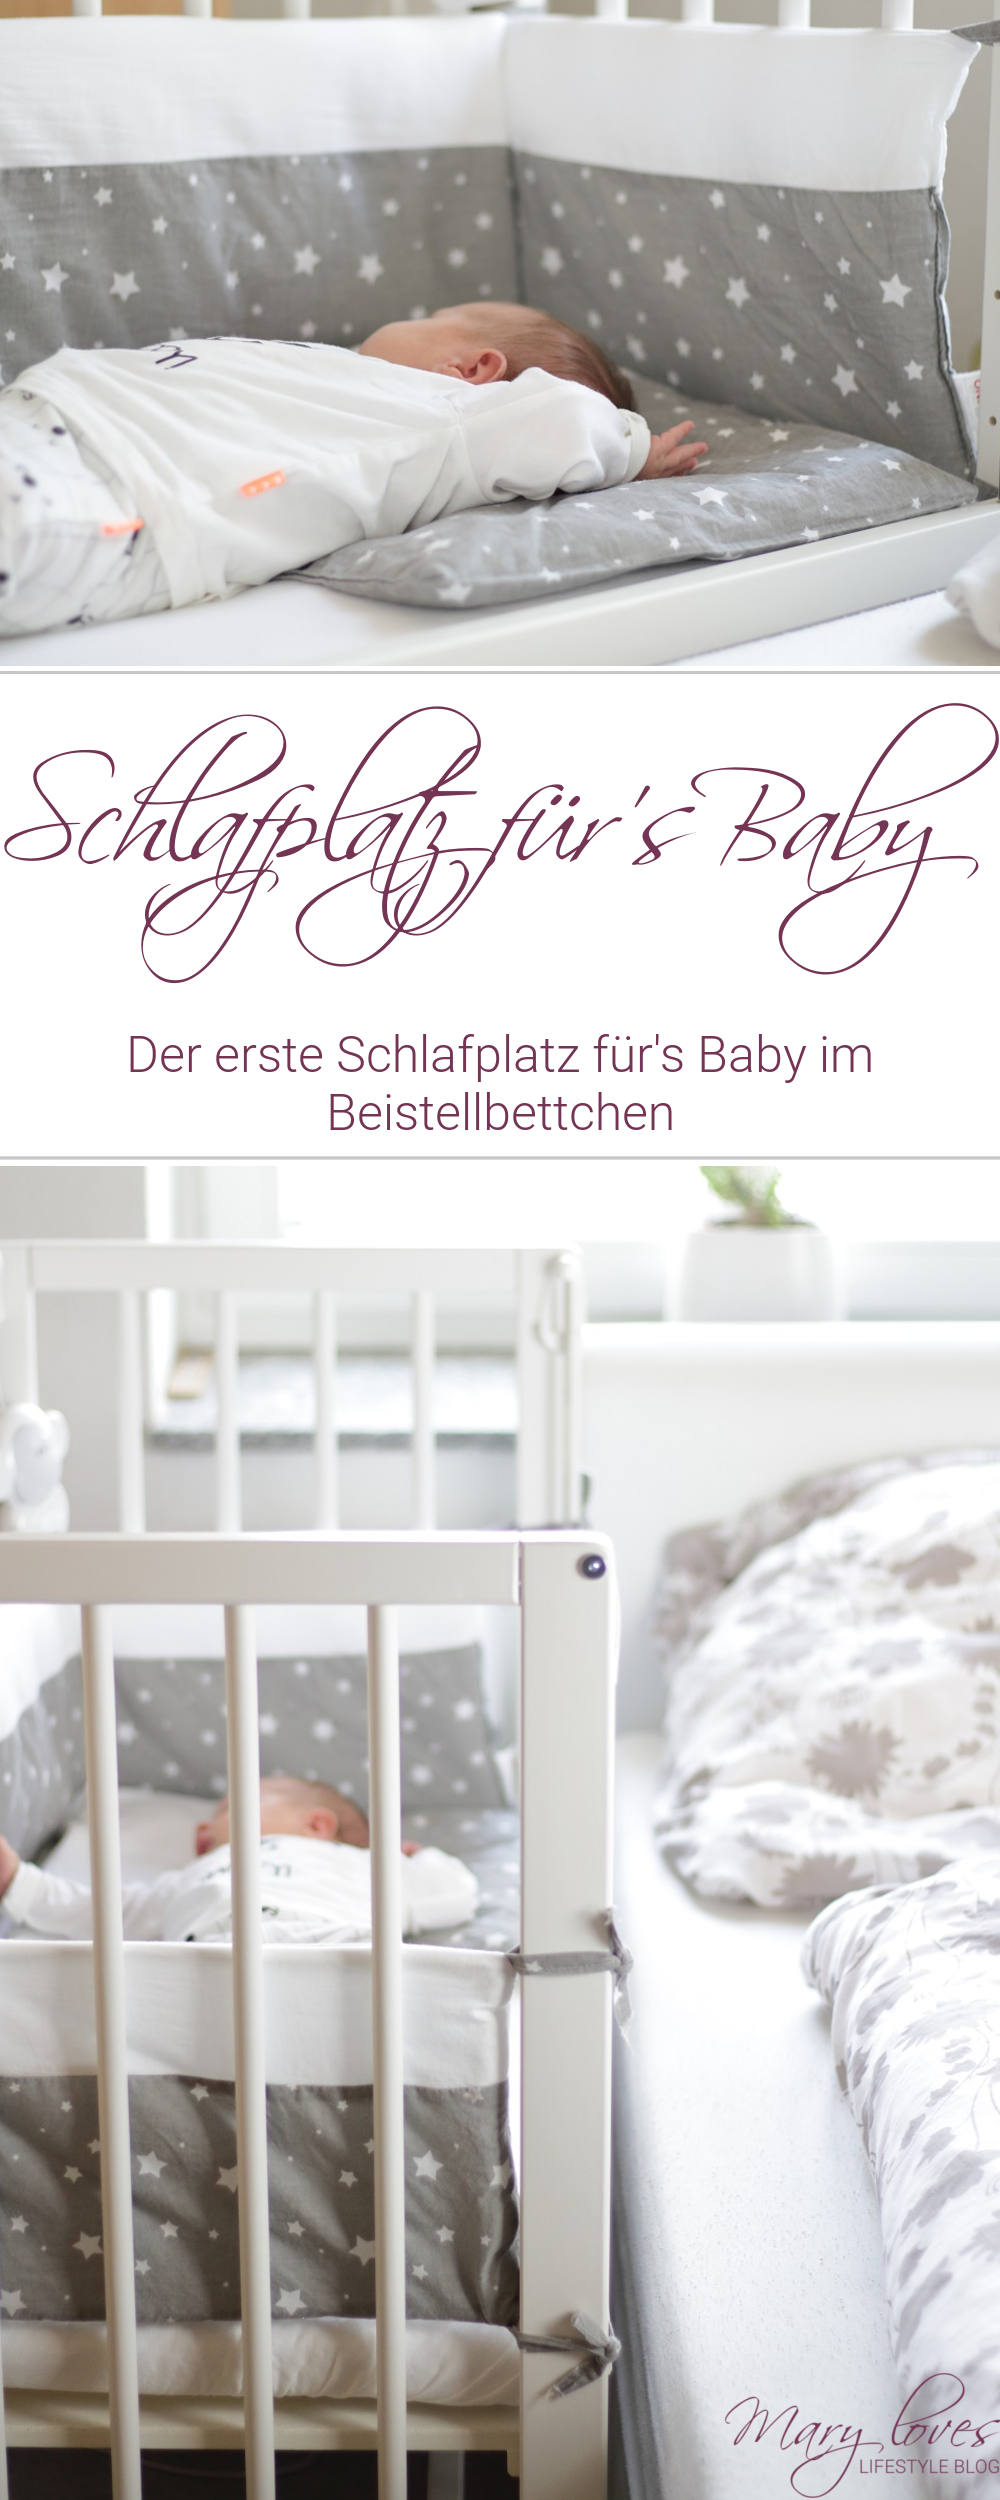 der erste schlafplatz f r 39 s baby im little world beistellbett mary loves. Black Bedroom Furniture Sets. Home Design Ideas